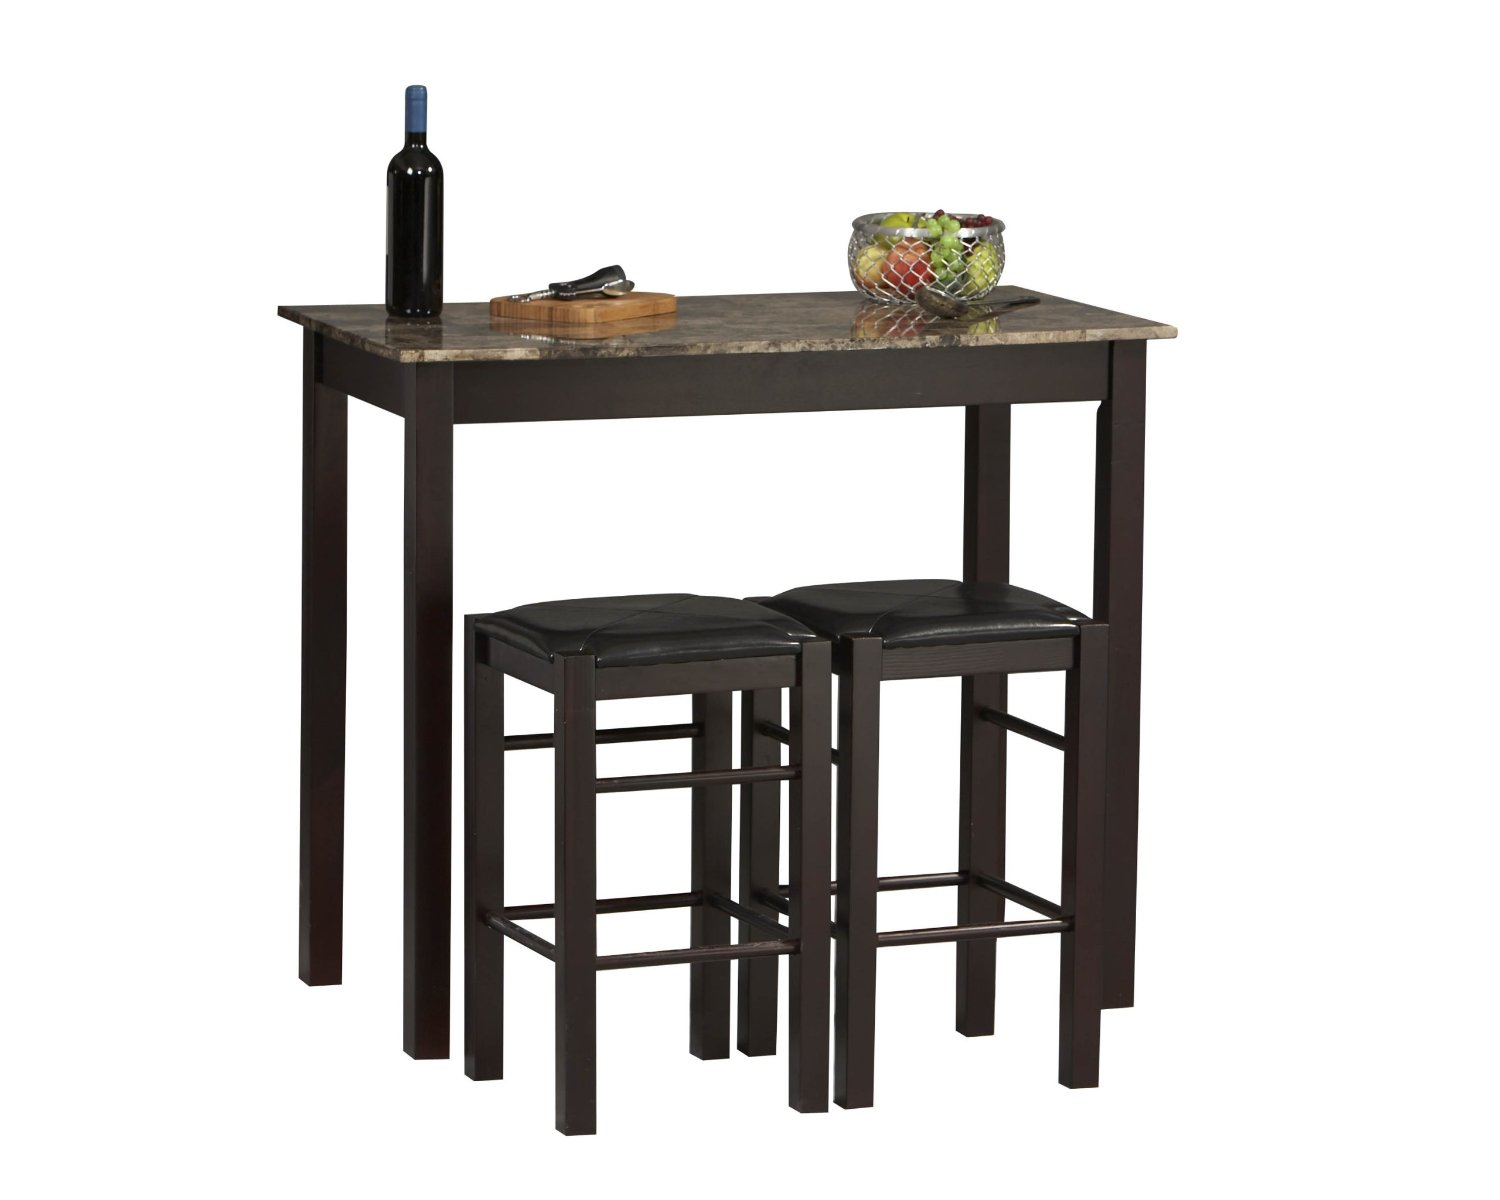 What Is Counter Height And Bar